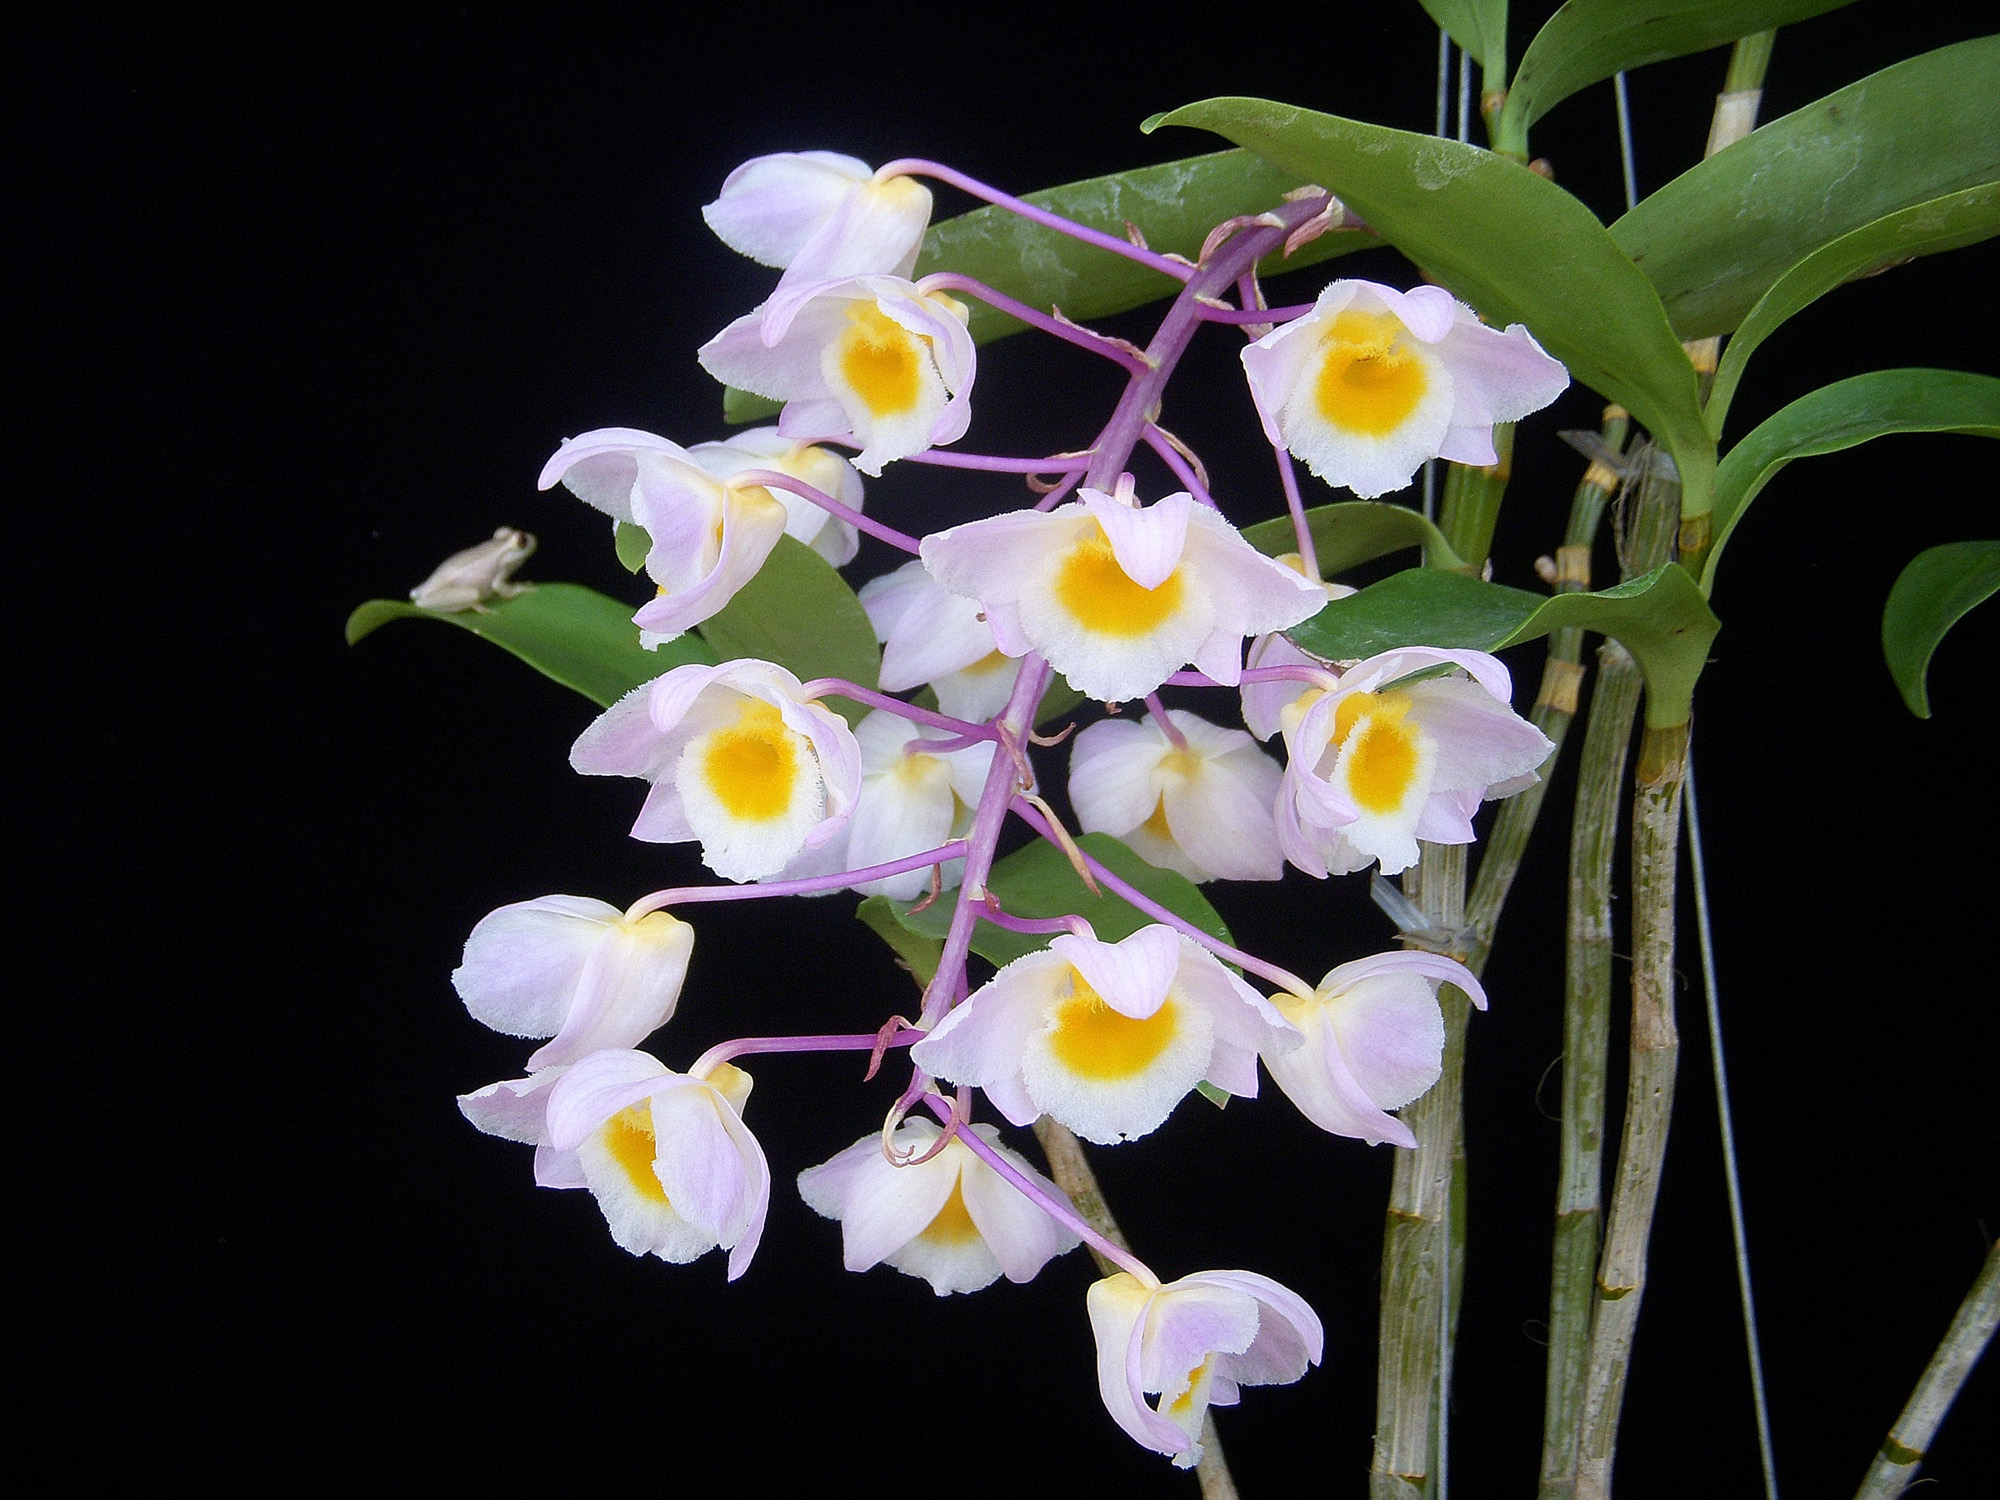 http://www.naplesorchidsociety.org/wp-content/gallery/dendrobiums/dendrobium_amabile.jpg